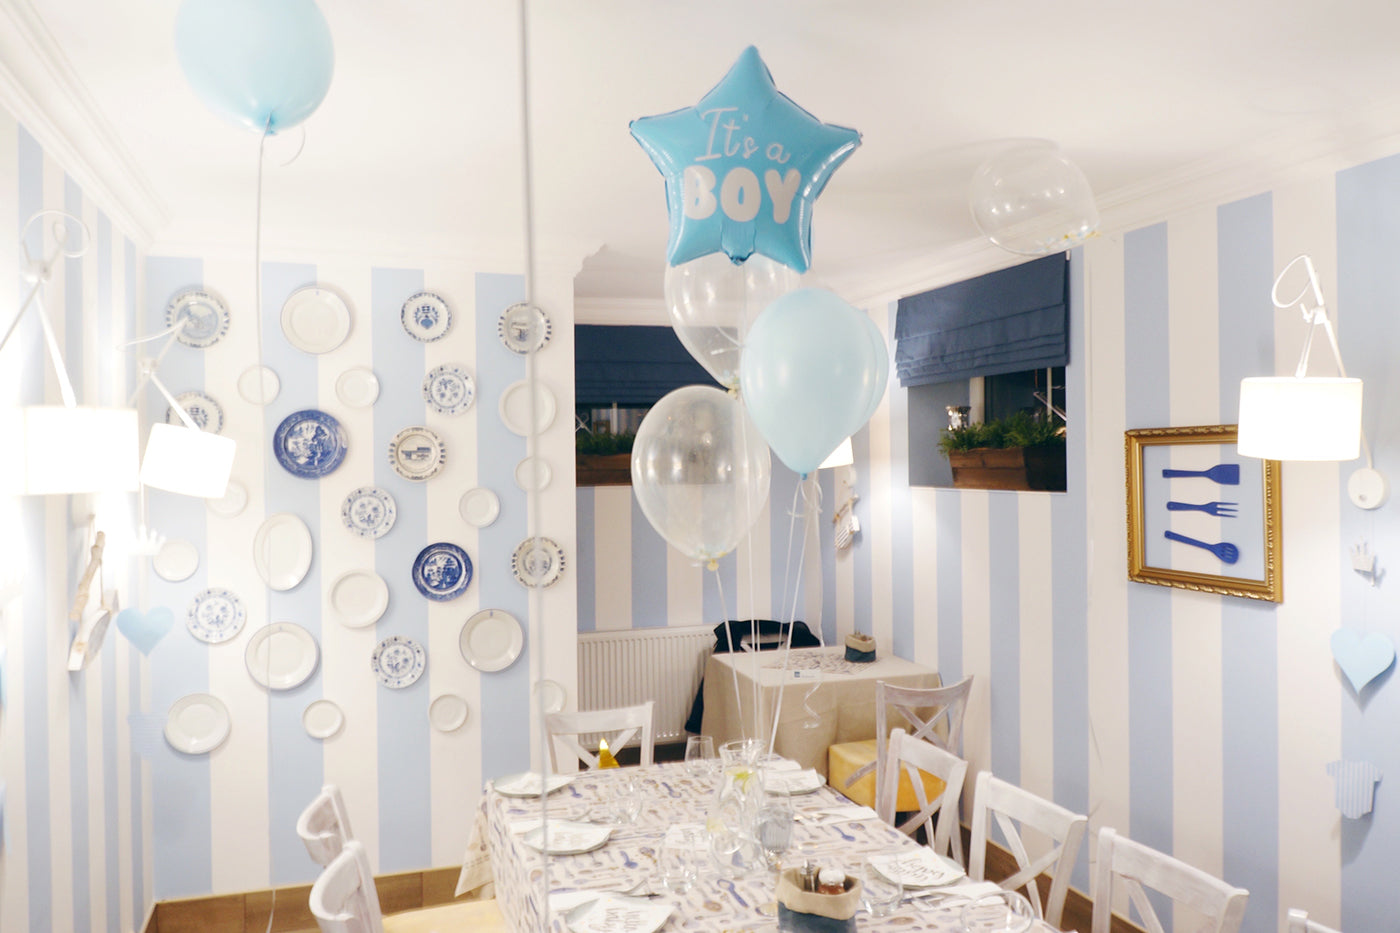 Baby Boy Shower Decoration Ideas And Themes Happiest Baby